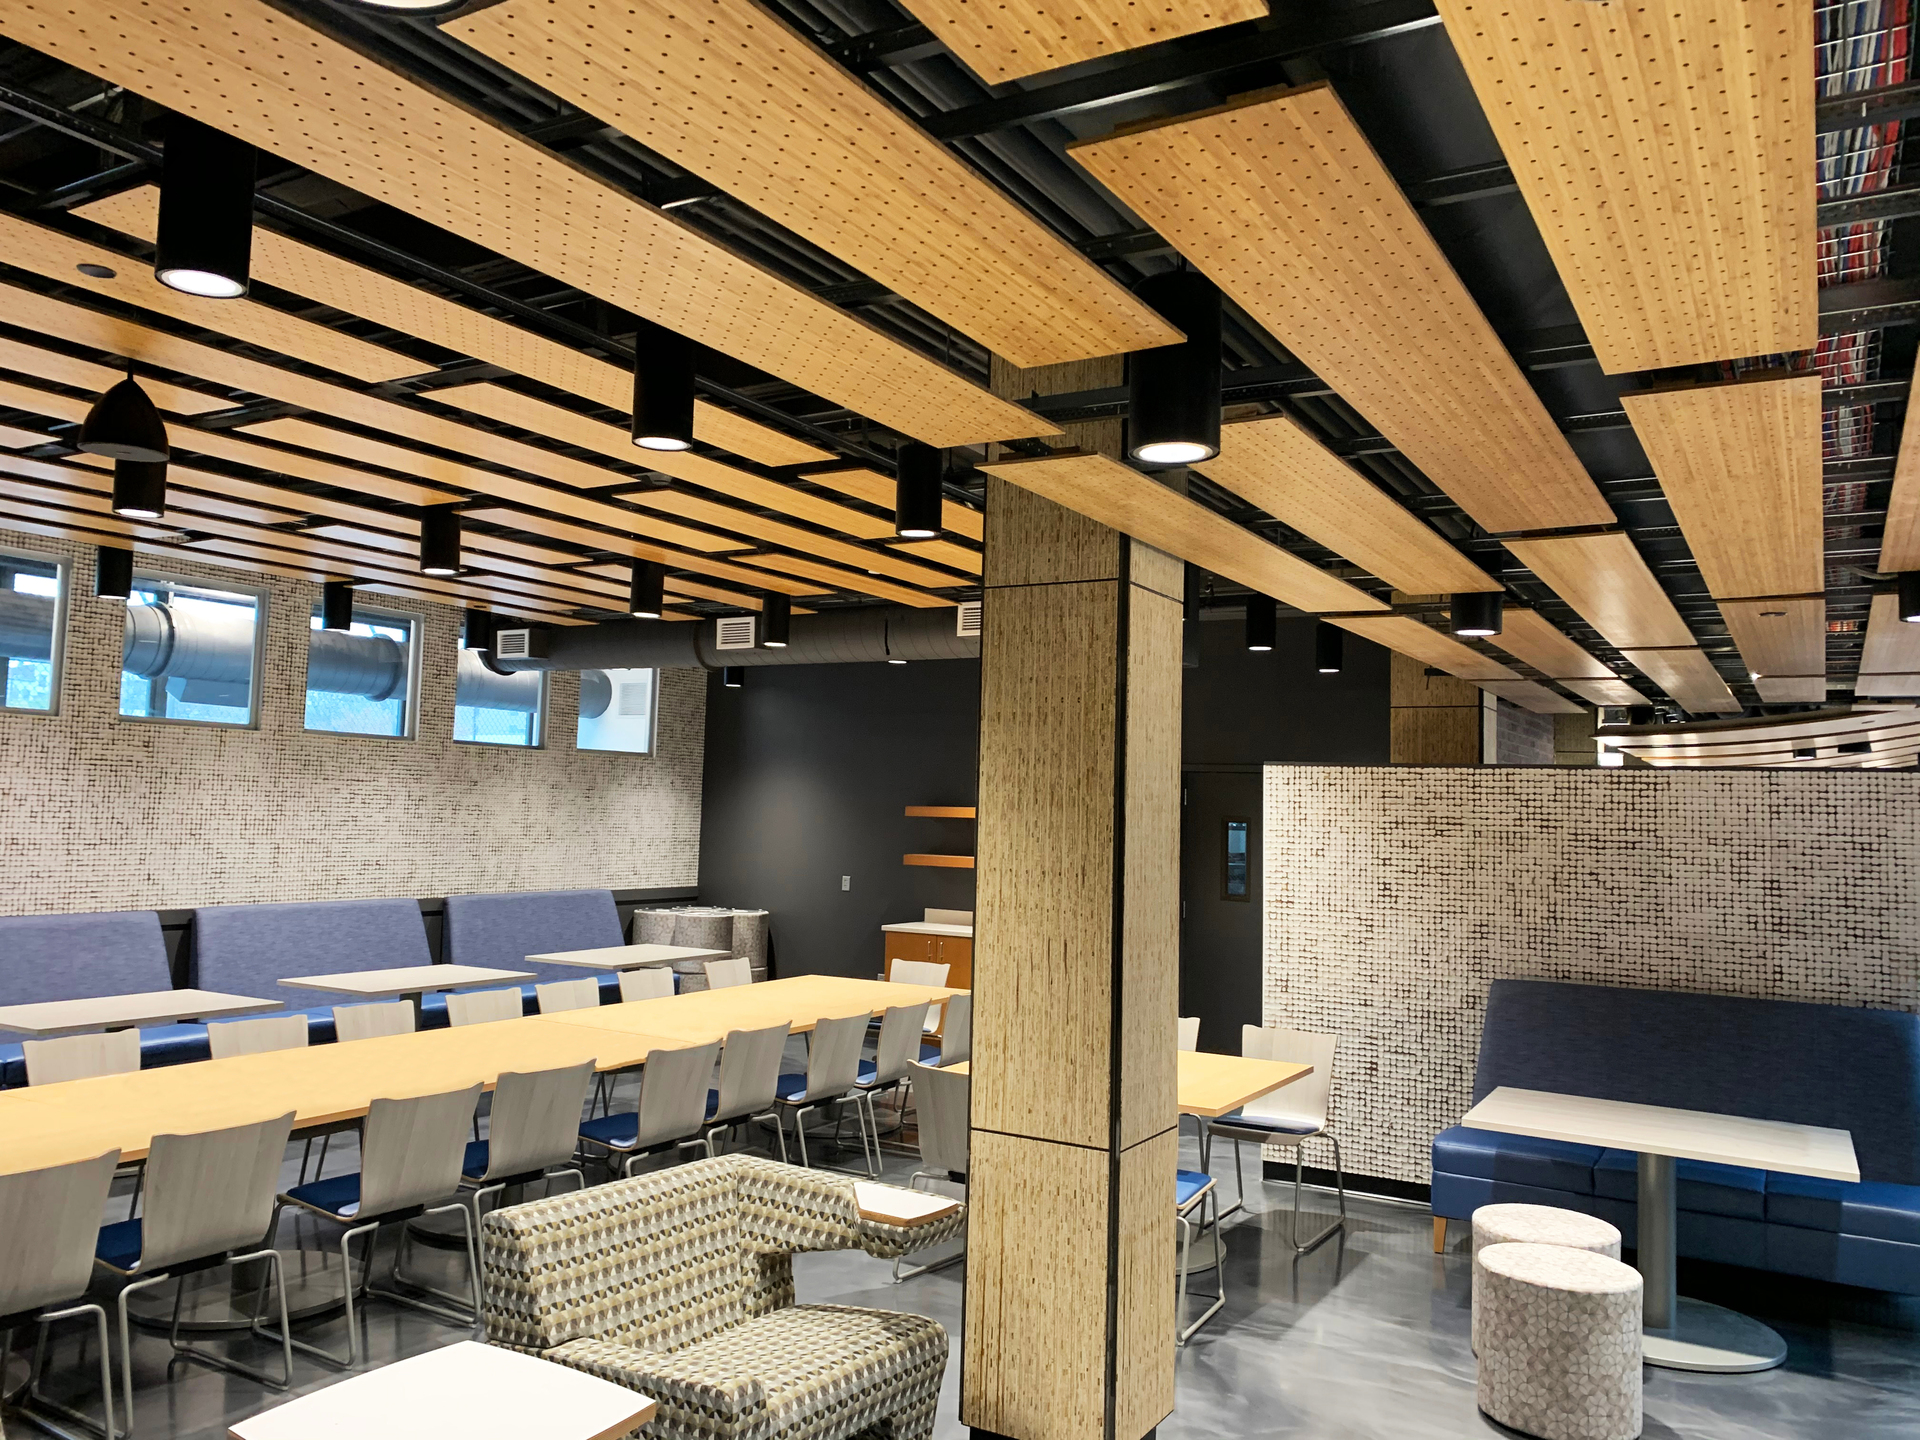 Throughout Newark Culinary School you will notice the use of Lamboo® Surface™ - Perforated Acoustic Panels.